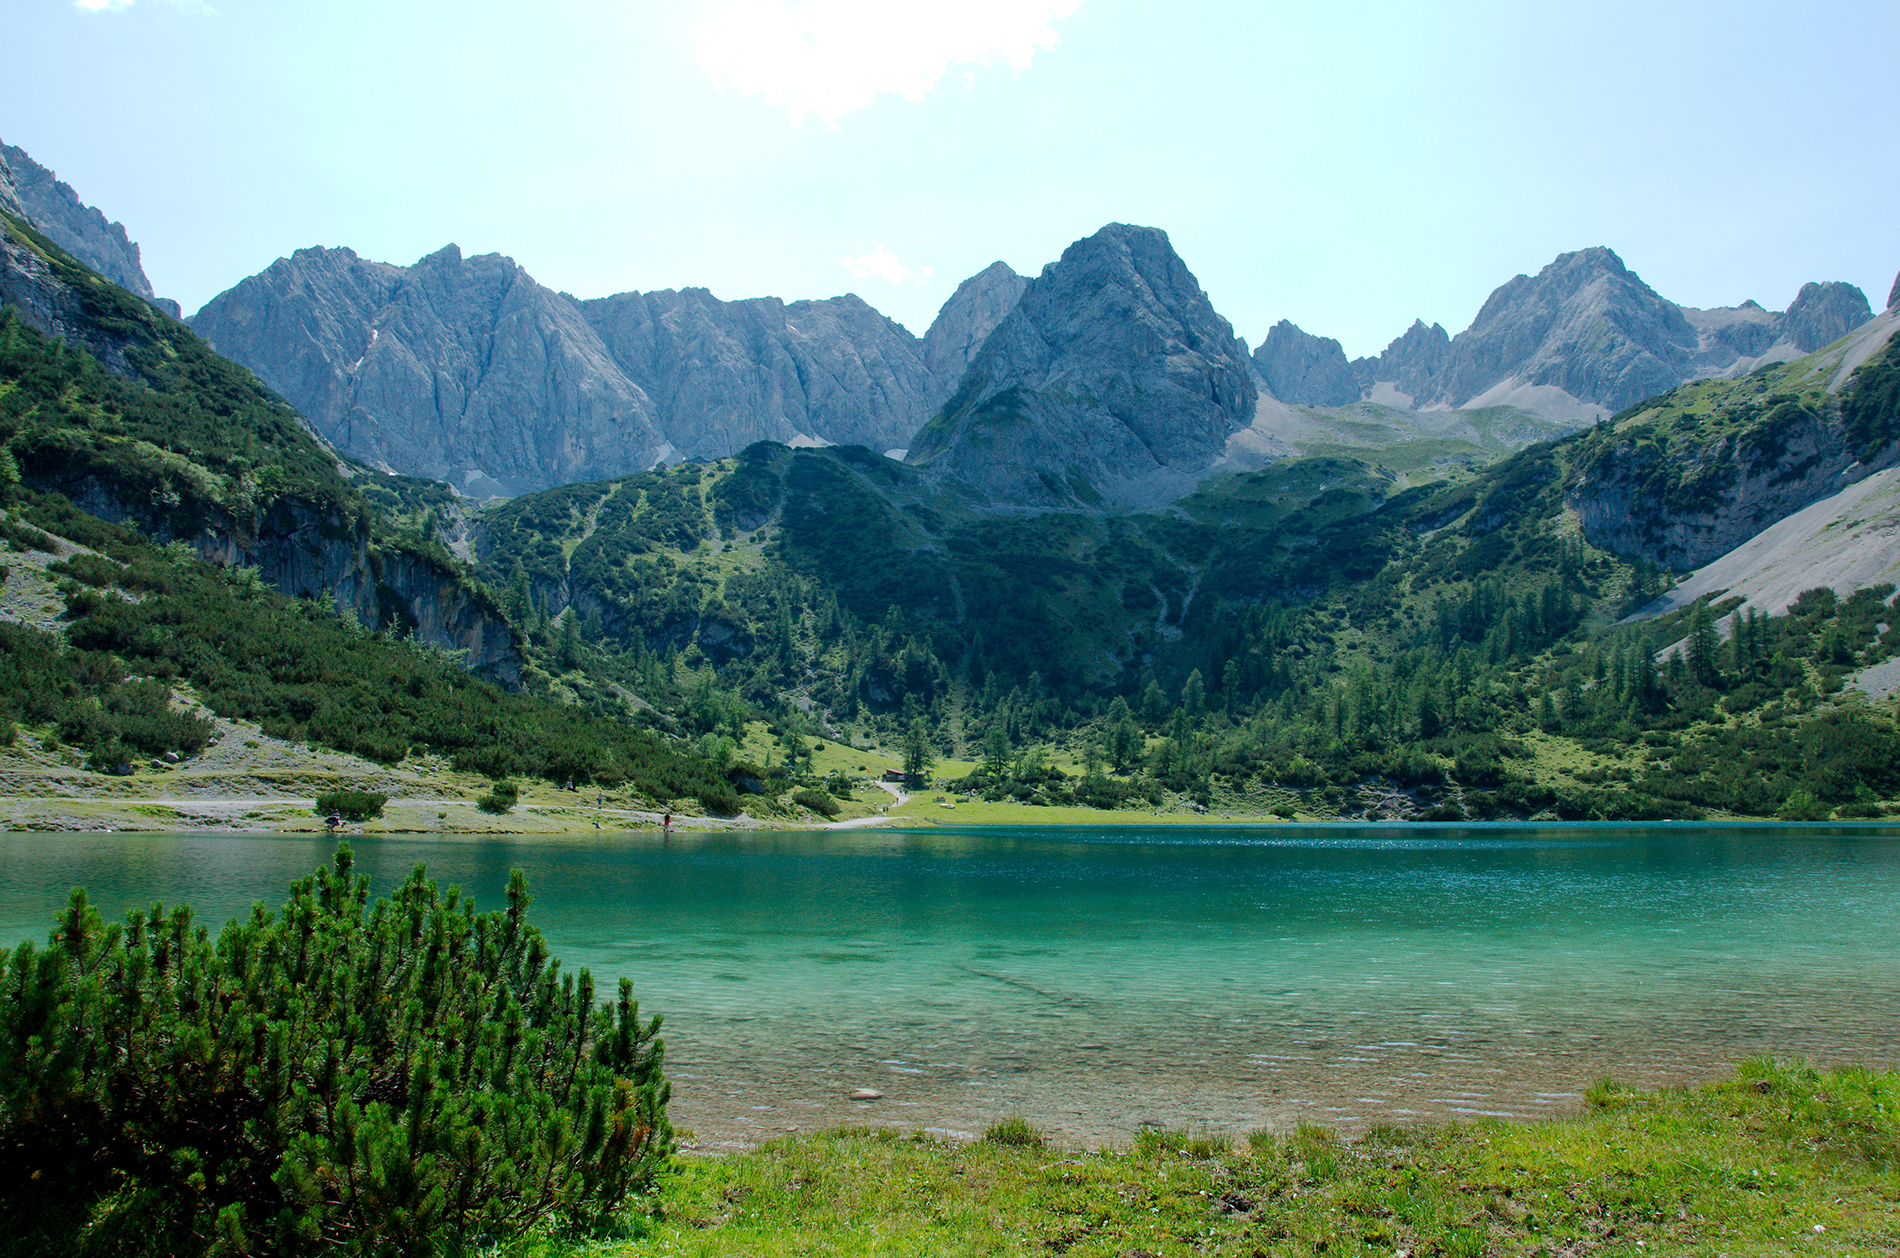 Green lake at the foot of the mountain  54025